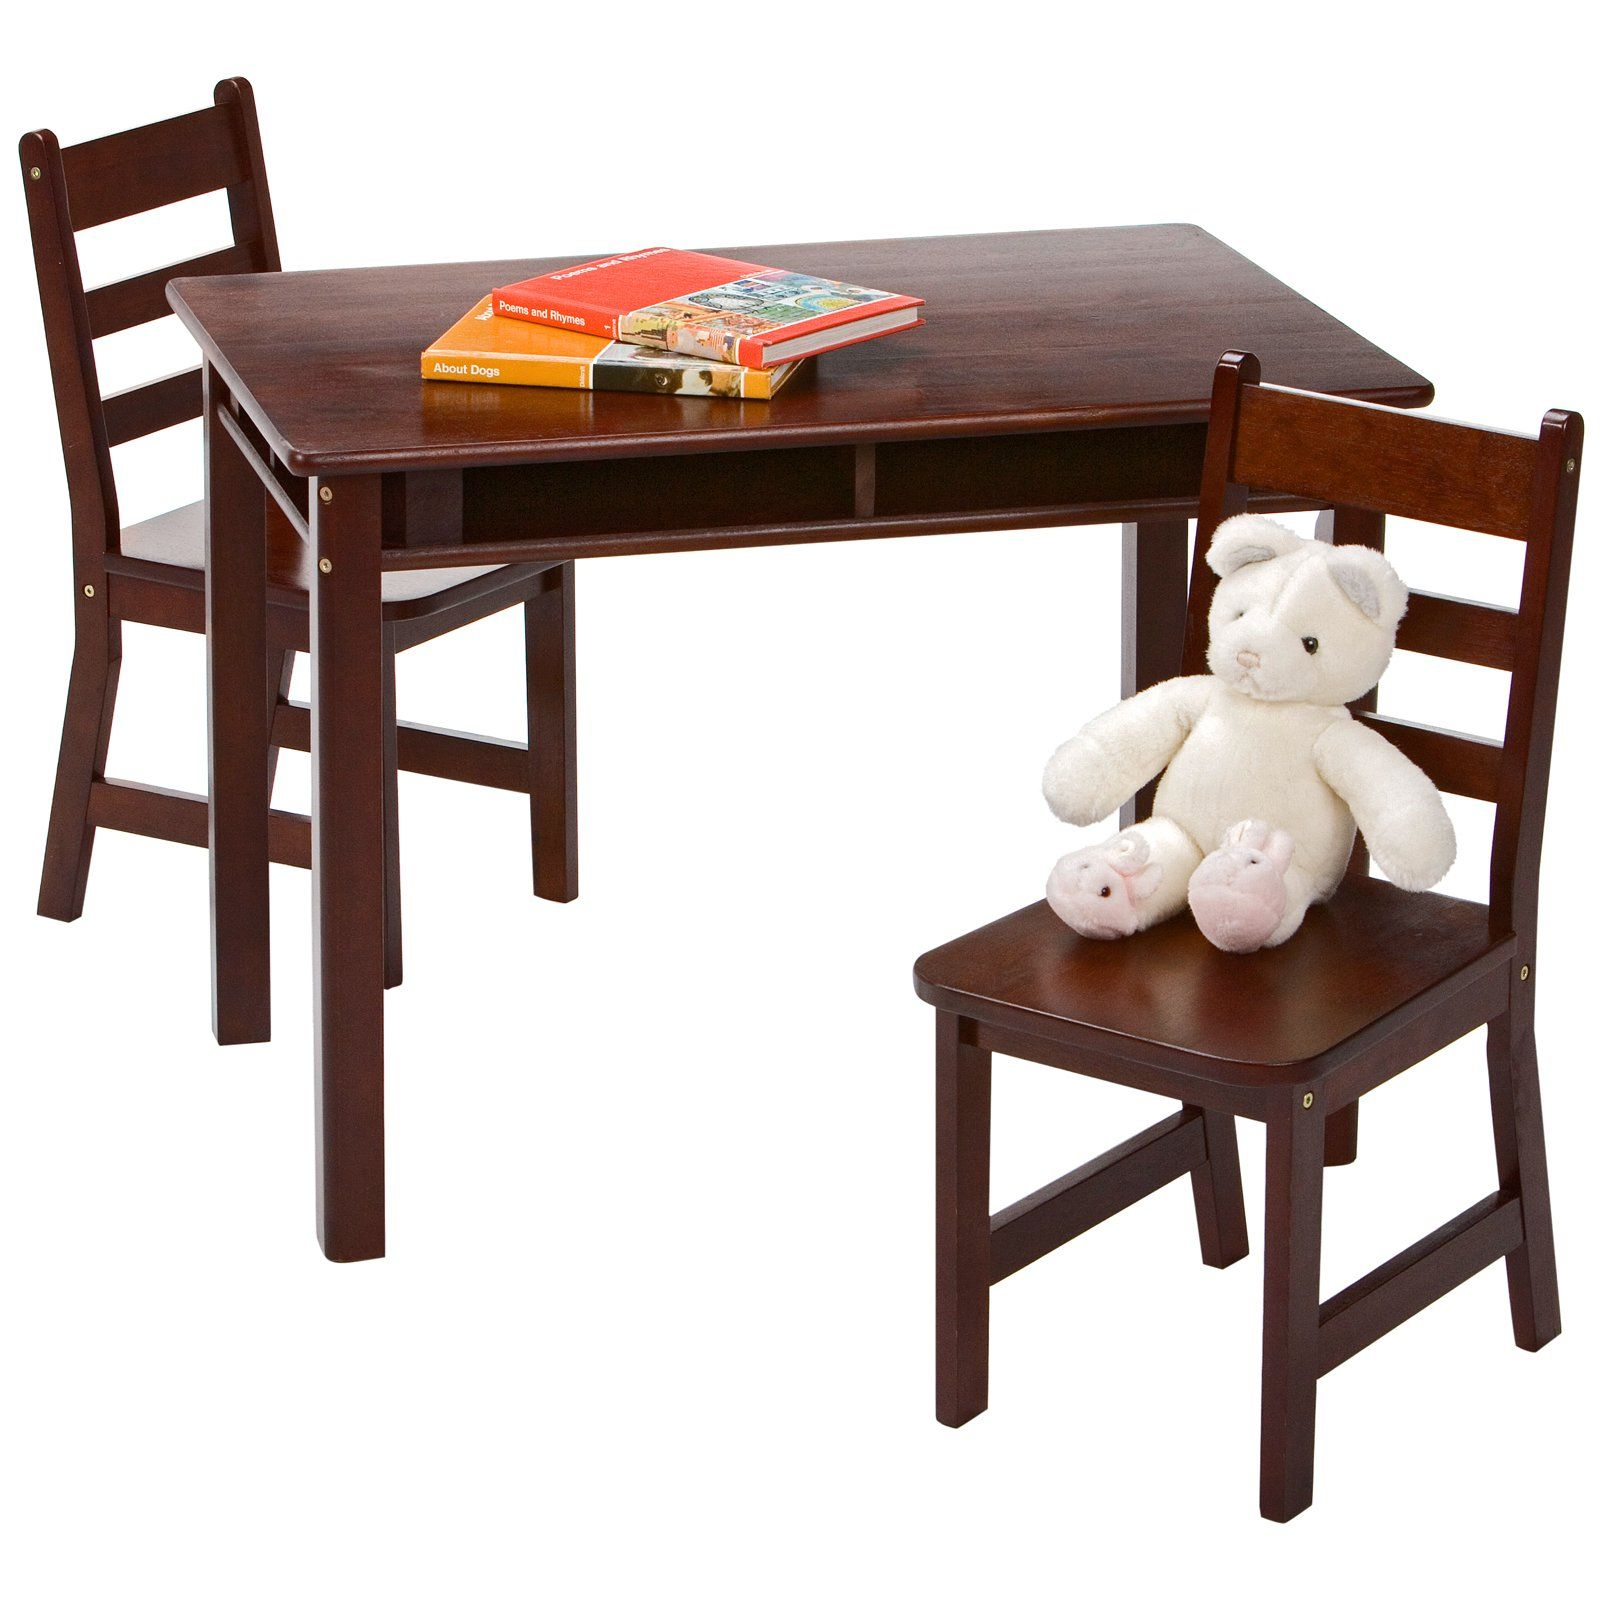 eaf20b95664f Lipper Childrens Rectangular Table and Chair Set